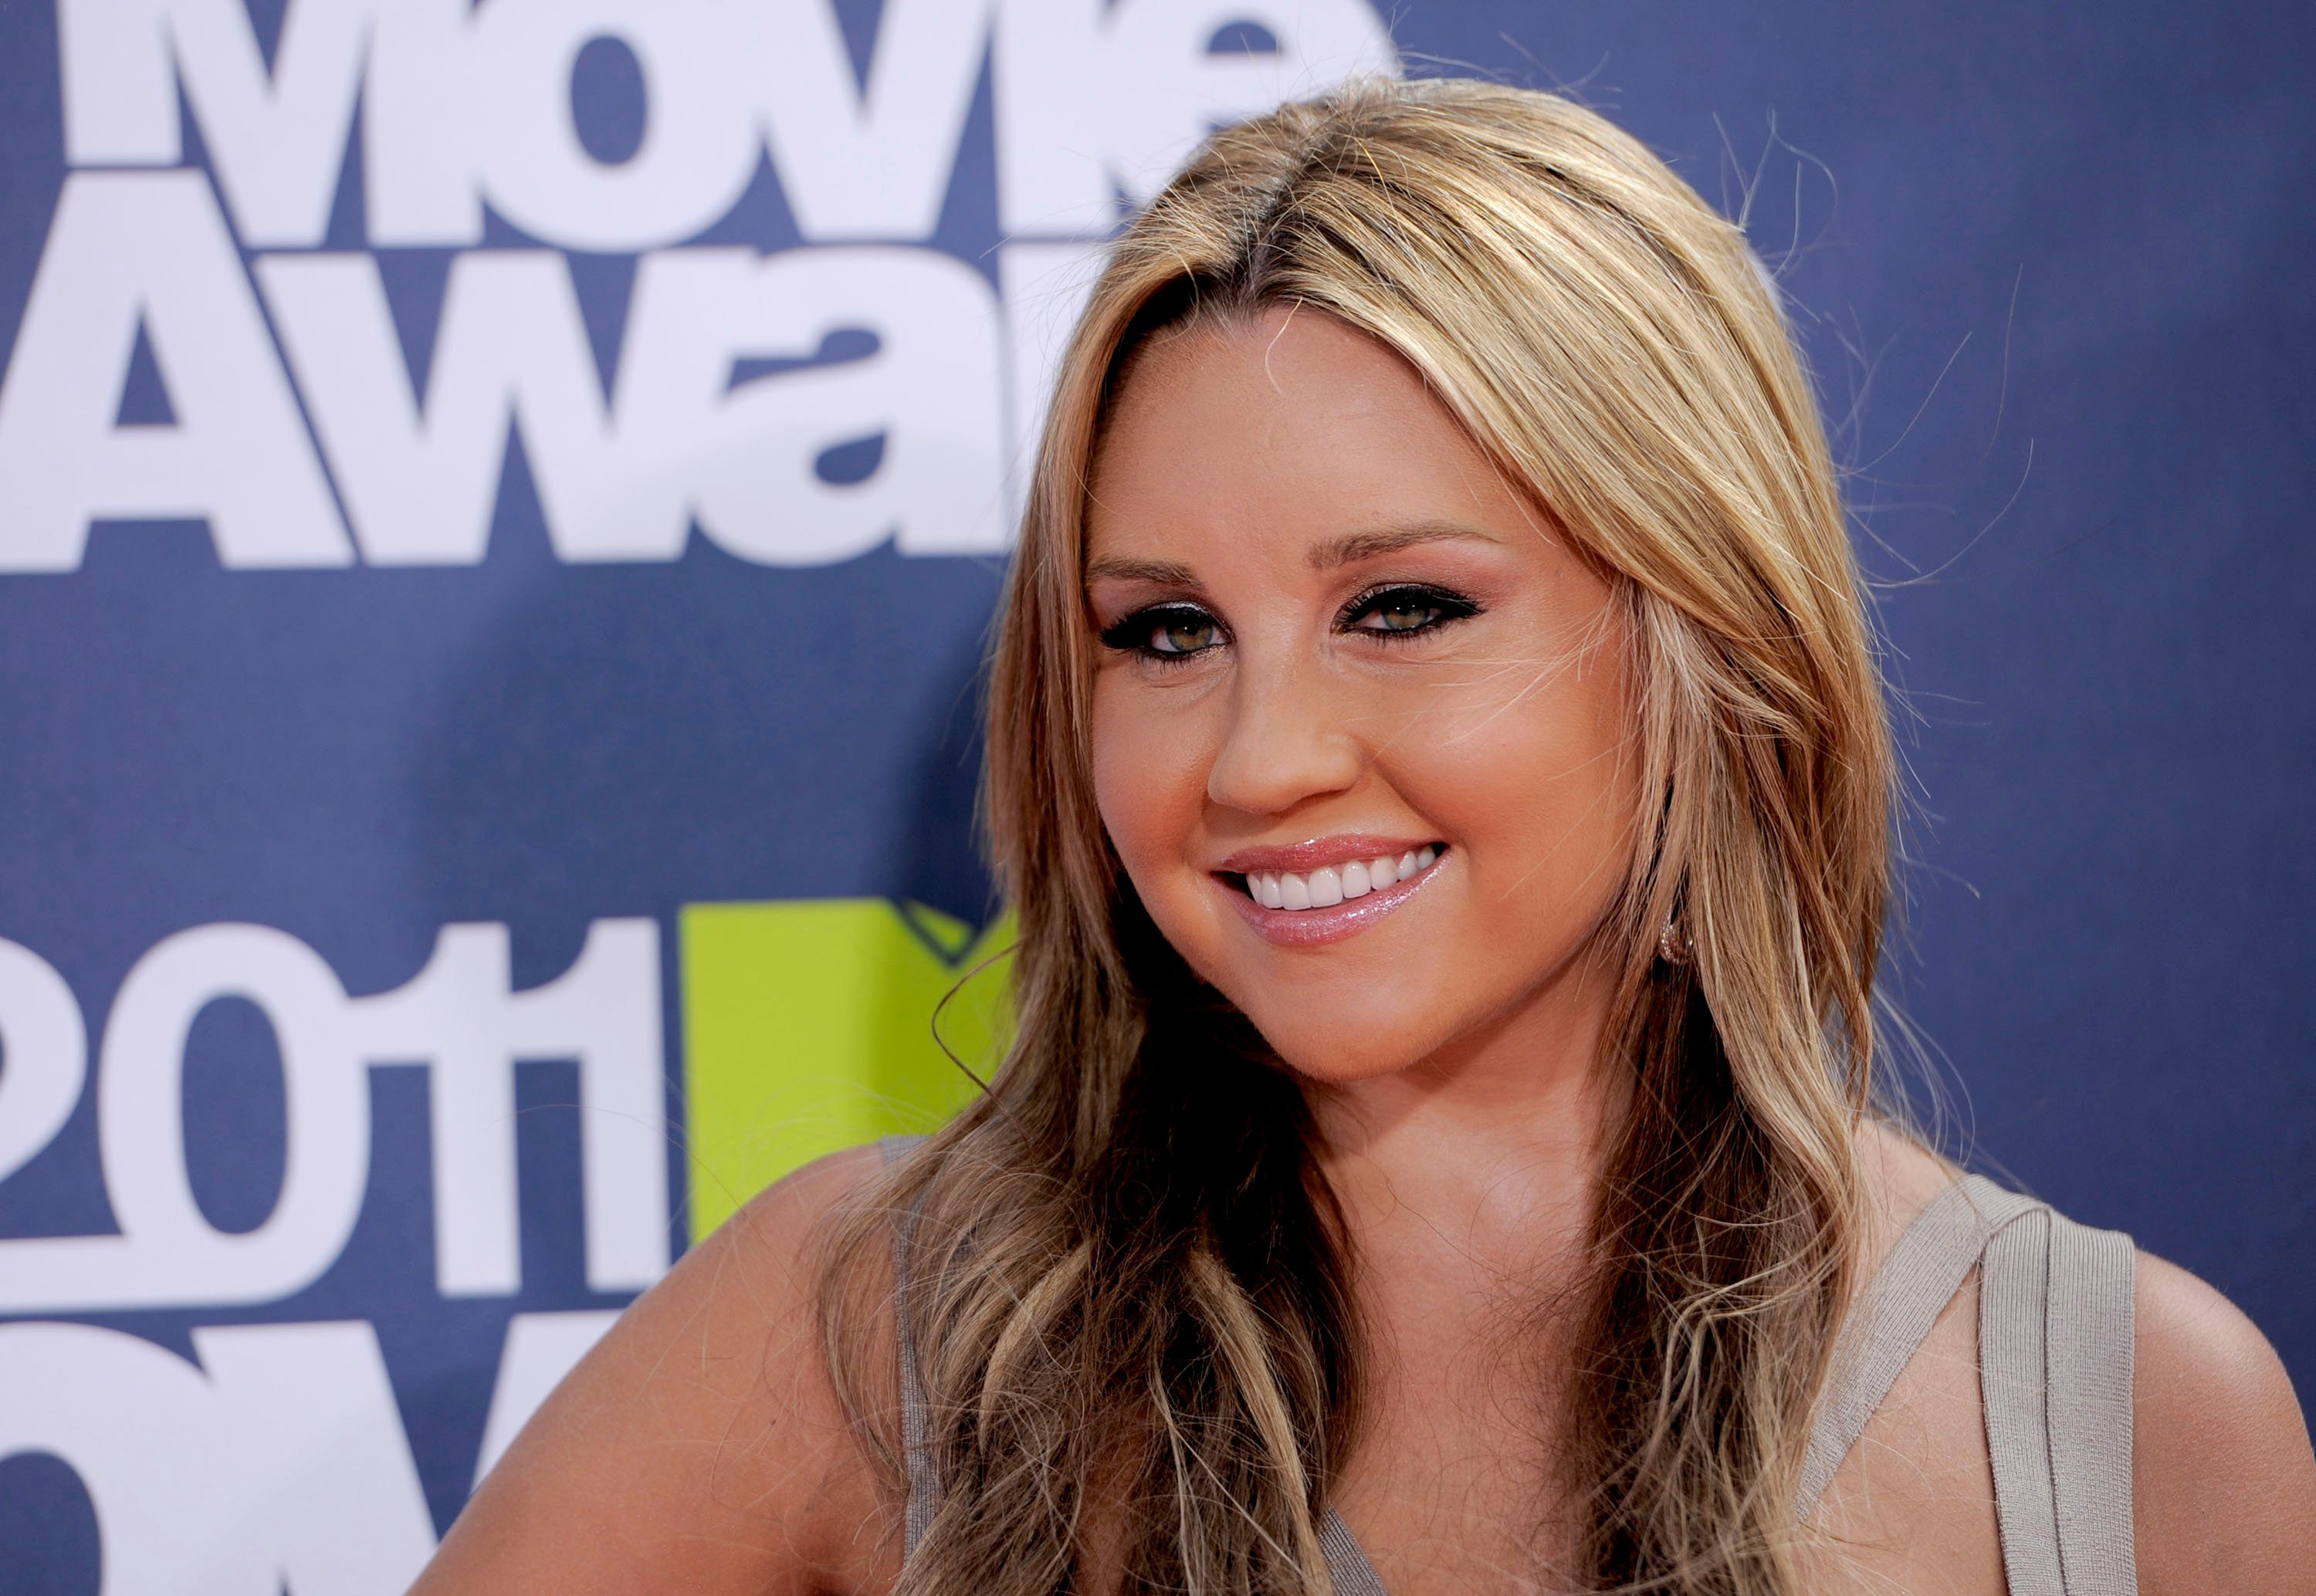 Amanda Bynes opens up on battle with addiction after public meltdown